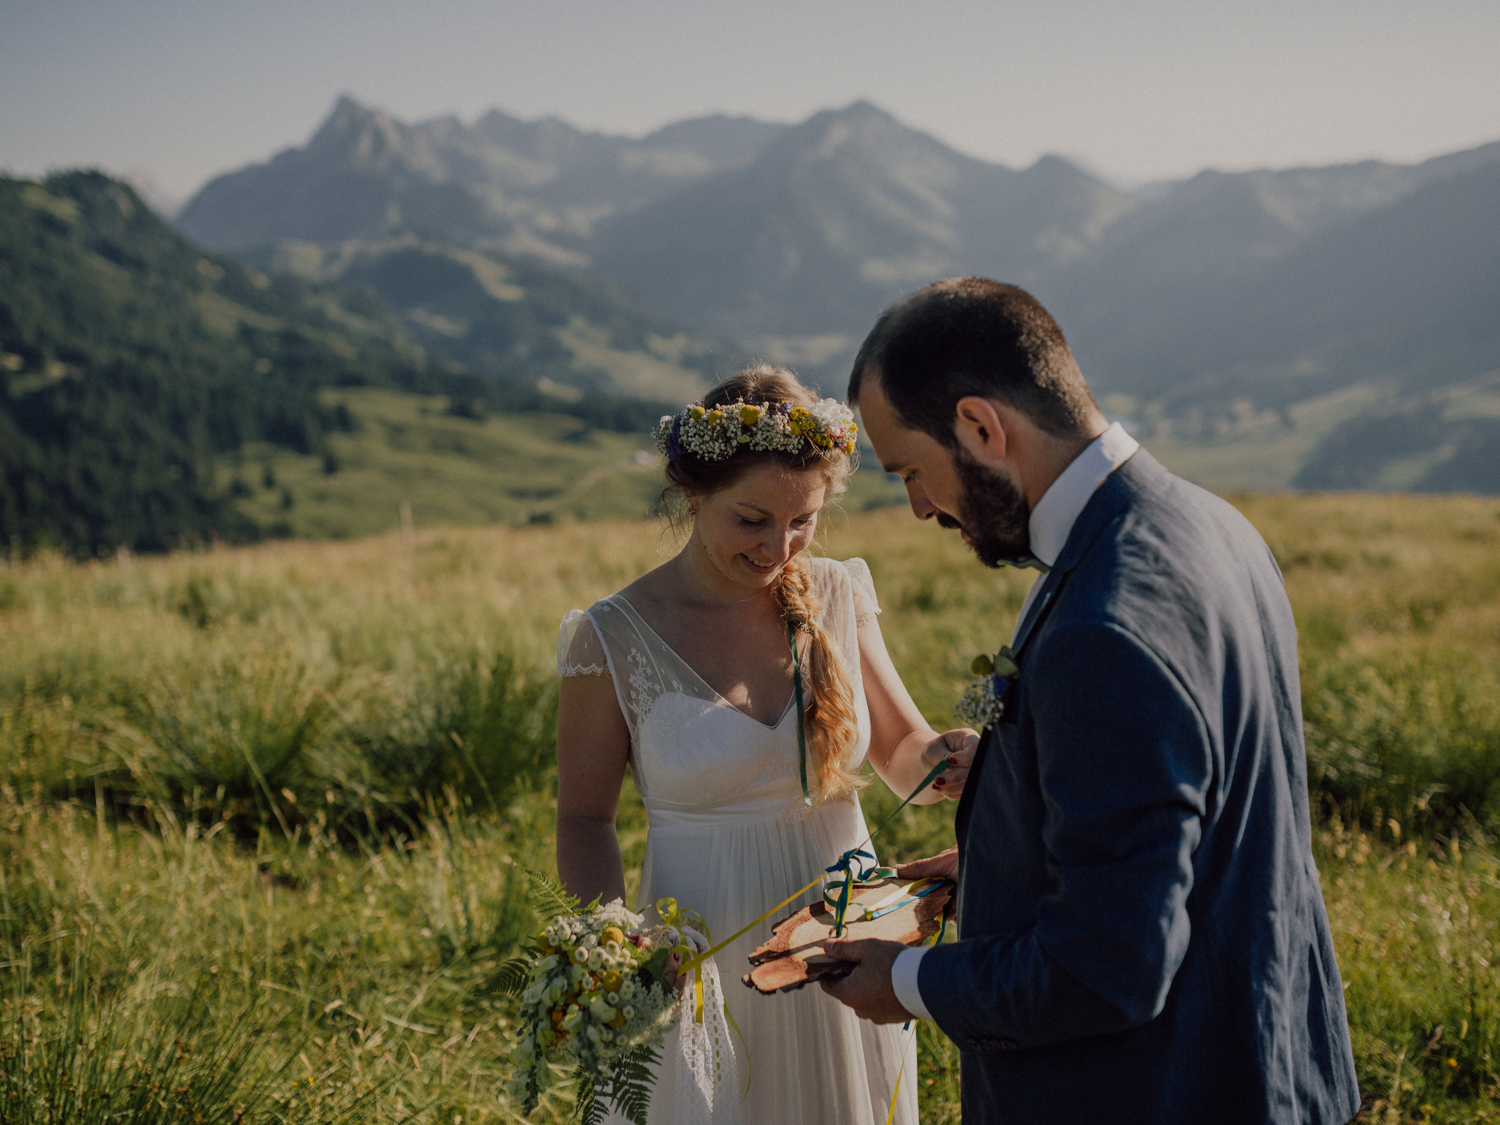 capyture-wedding-photographer-destination-elopement-switzerland-75